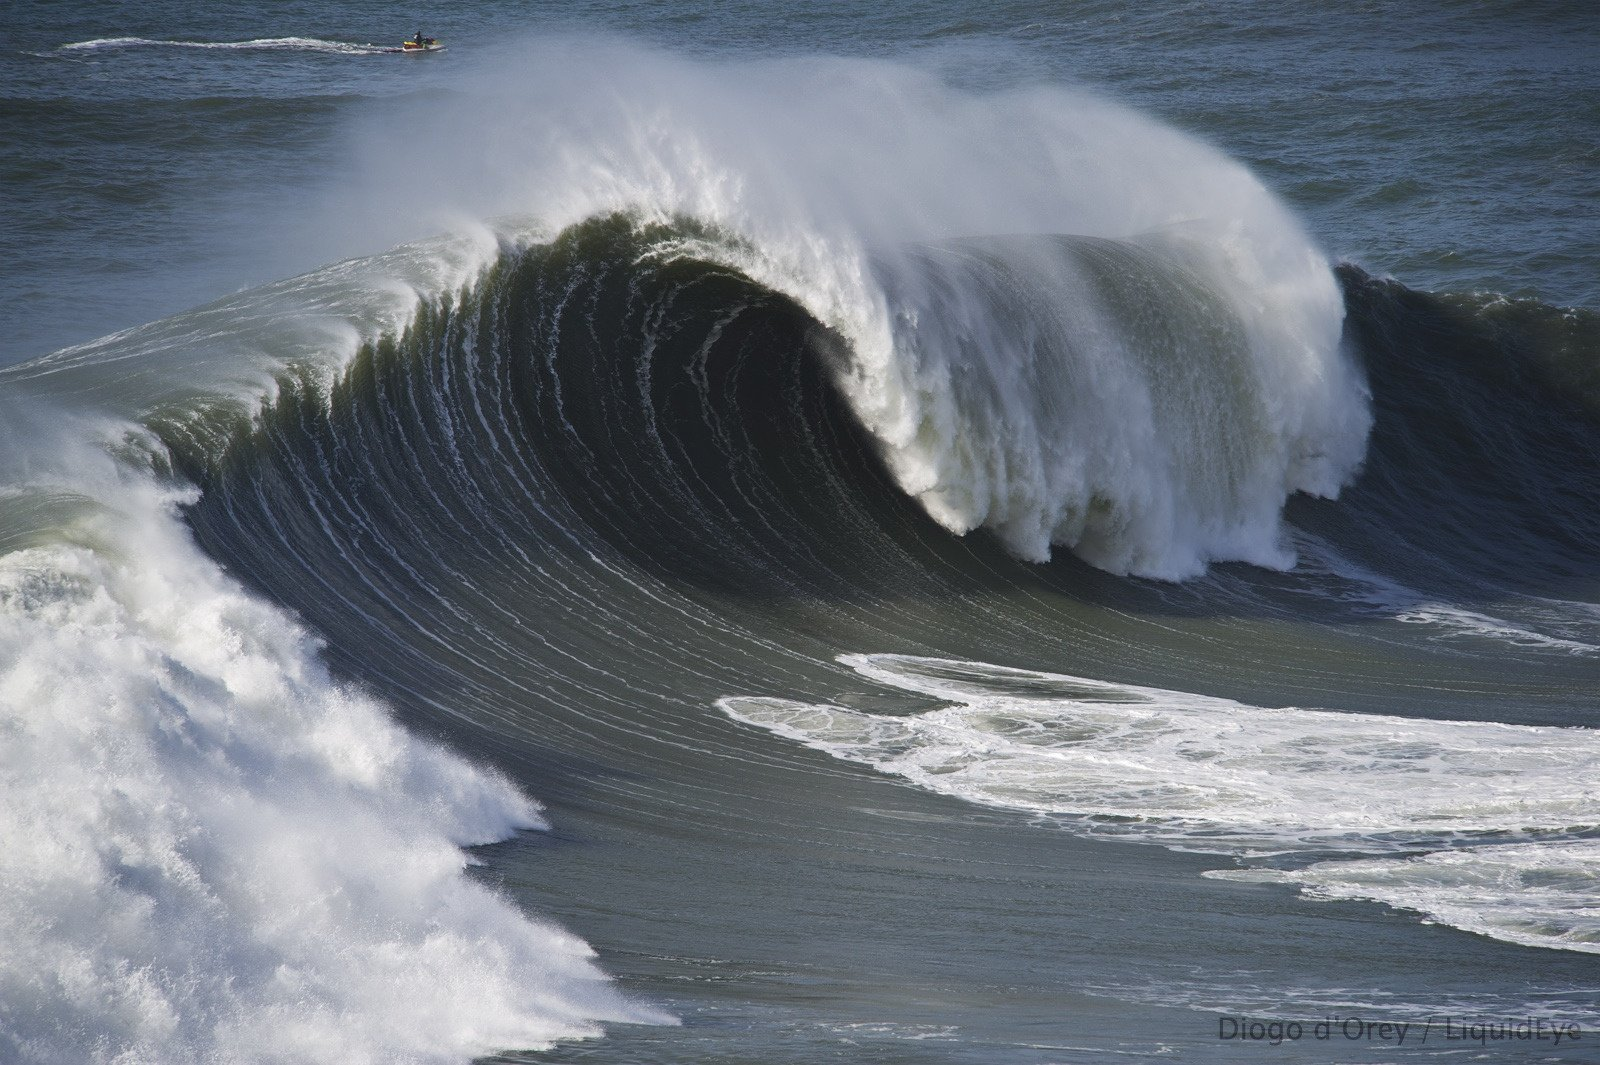 Diogo d'Orey's photo of Nazaré